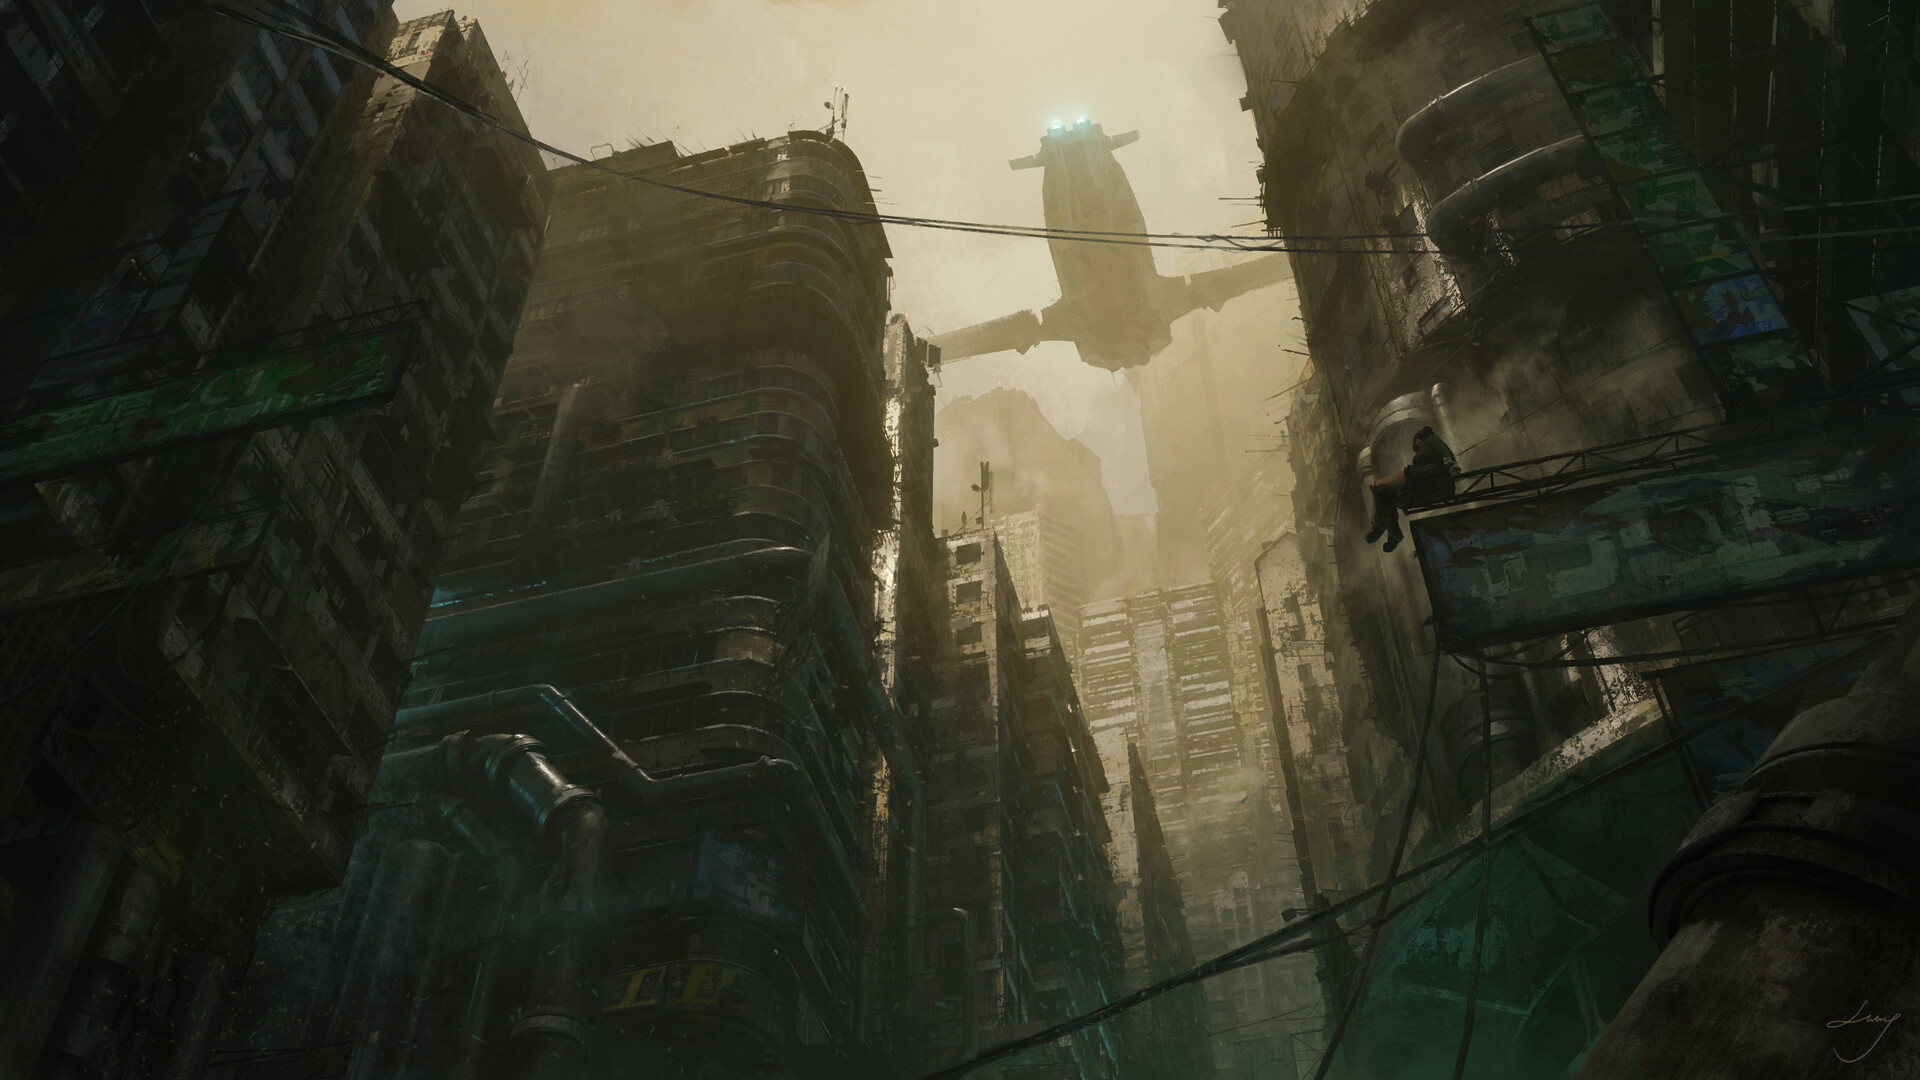 The Superb Science Fiction Art of Swang